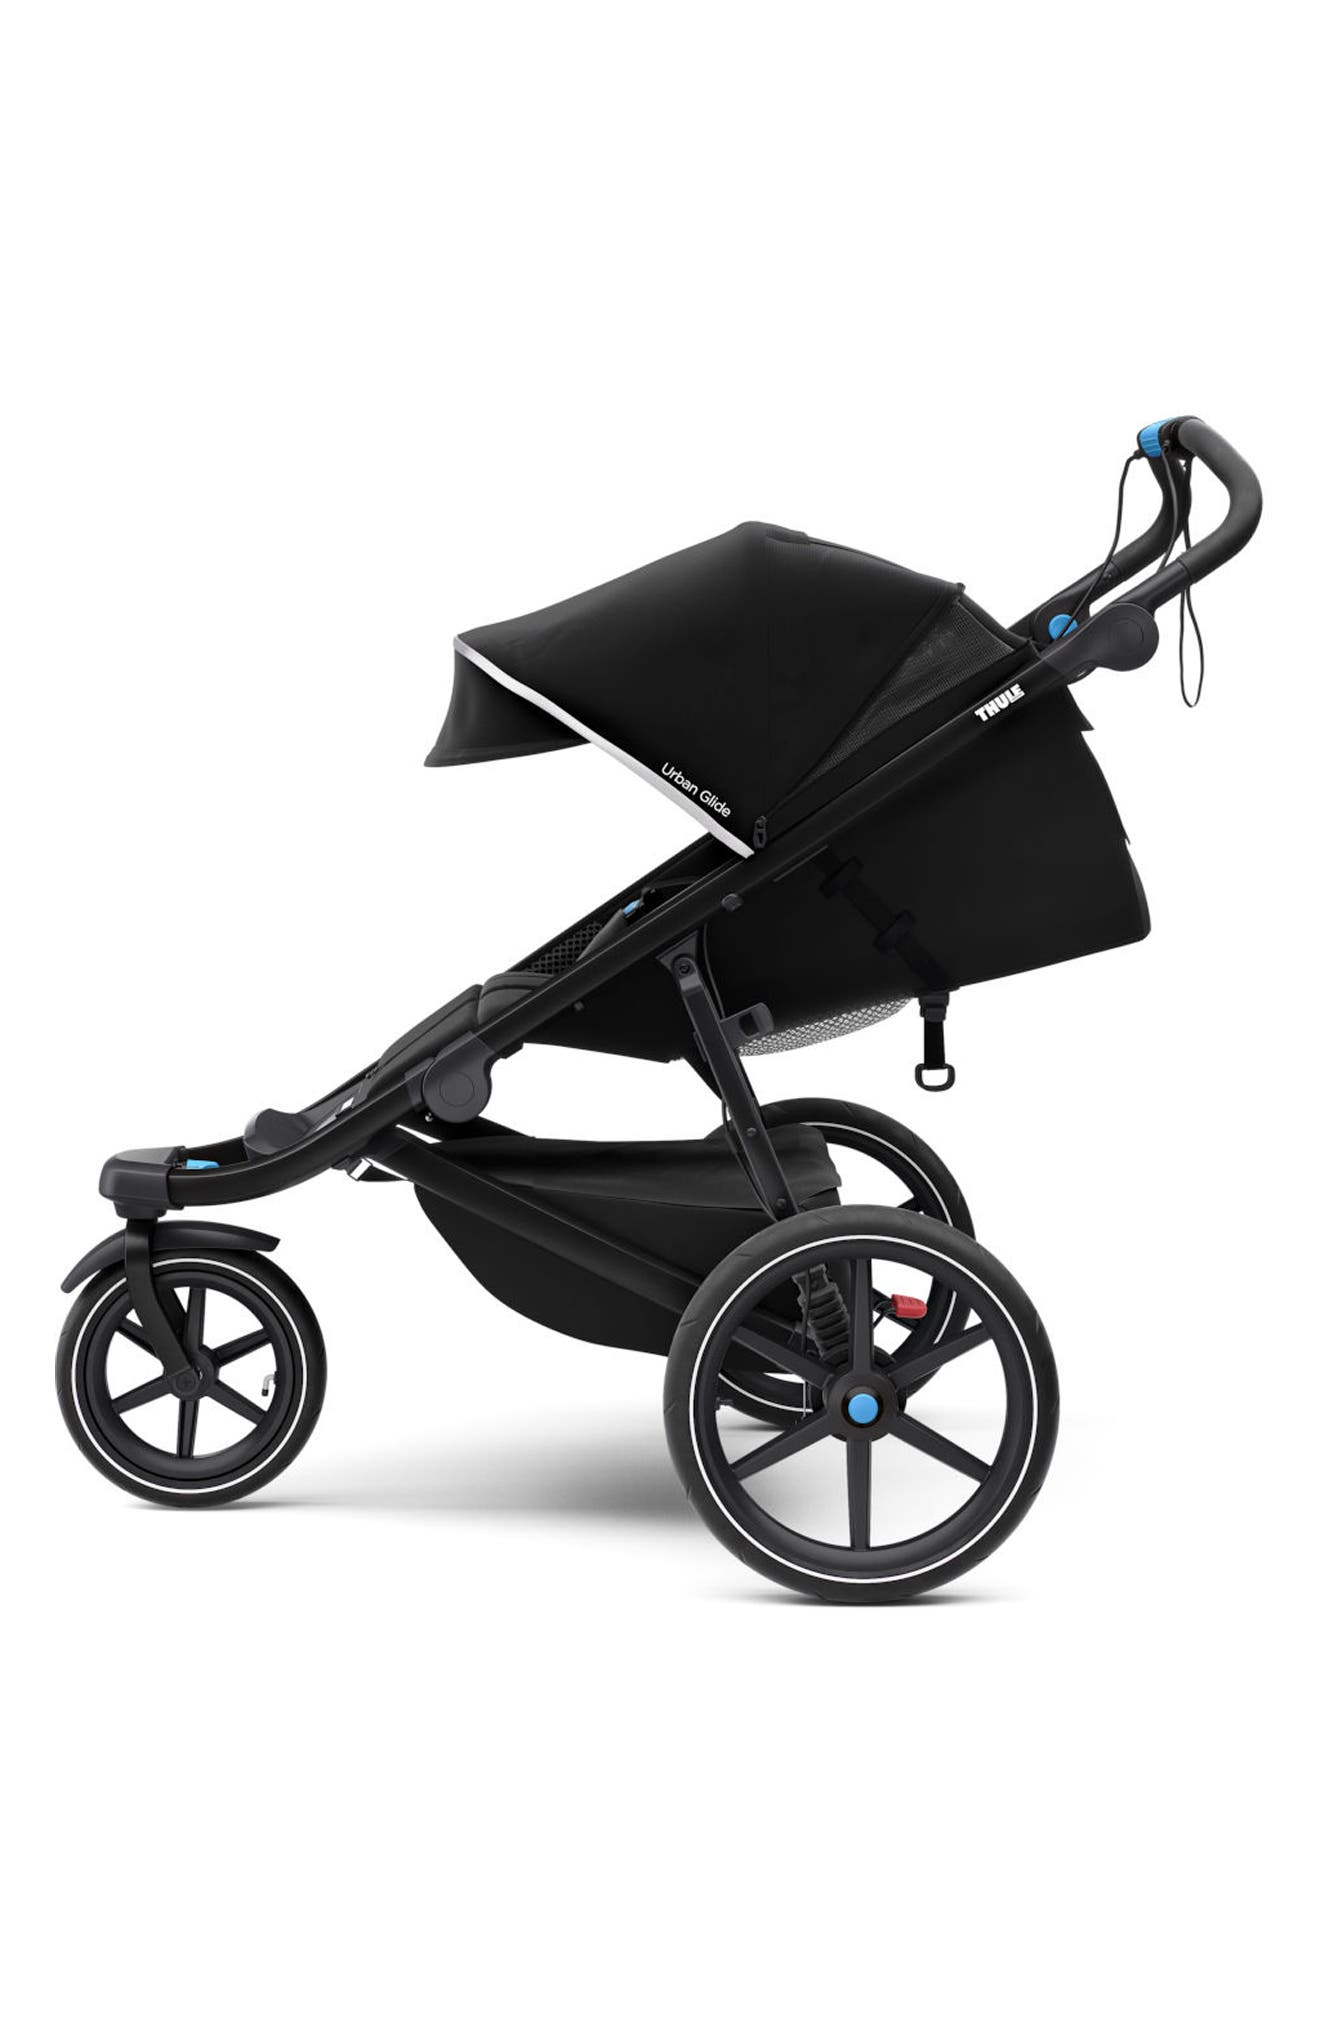 Urban Glide 2 Jogging Stroller with Silver Frame,                             Alternate thumbnail 2, color,                             Black/ Black Frame